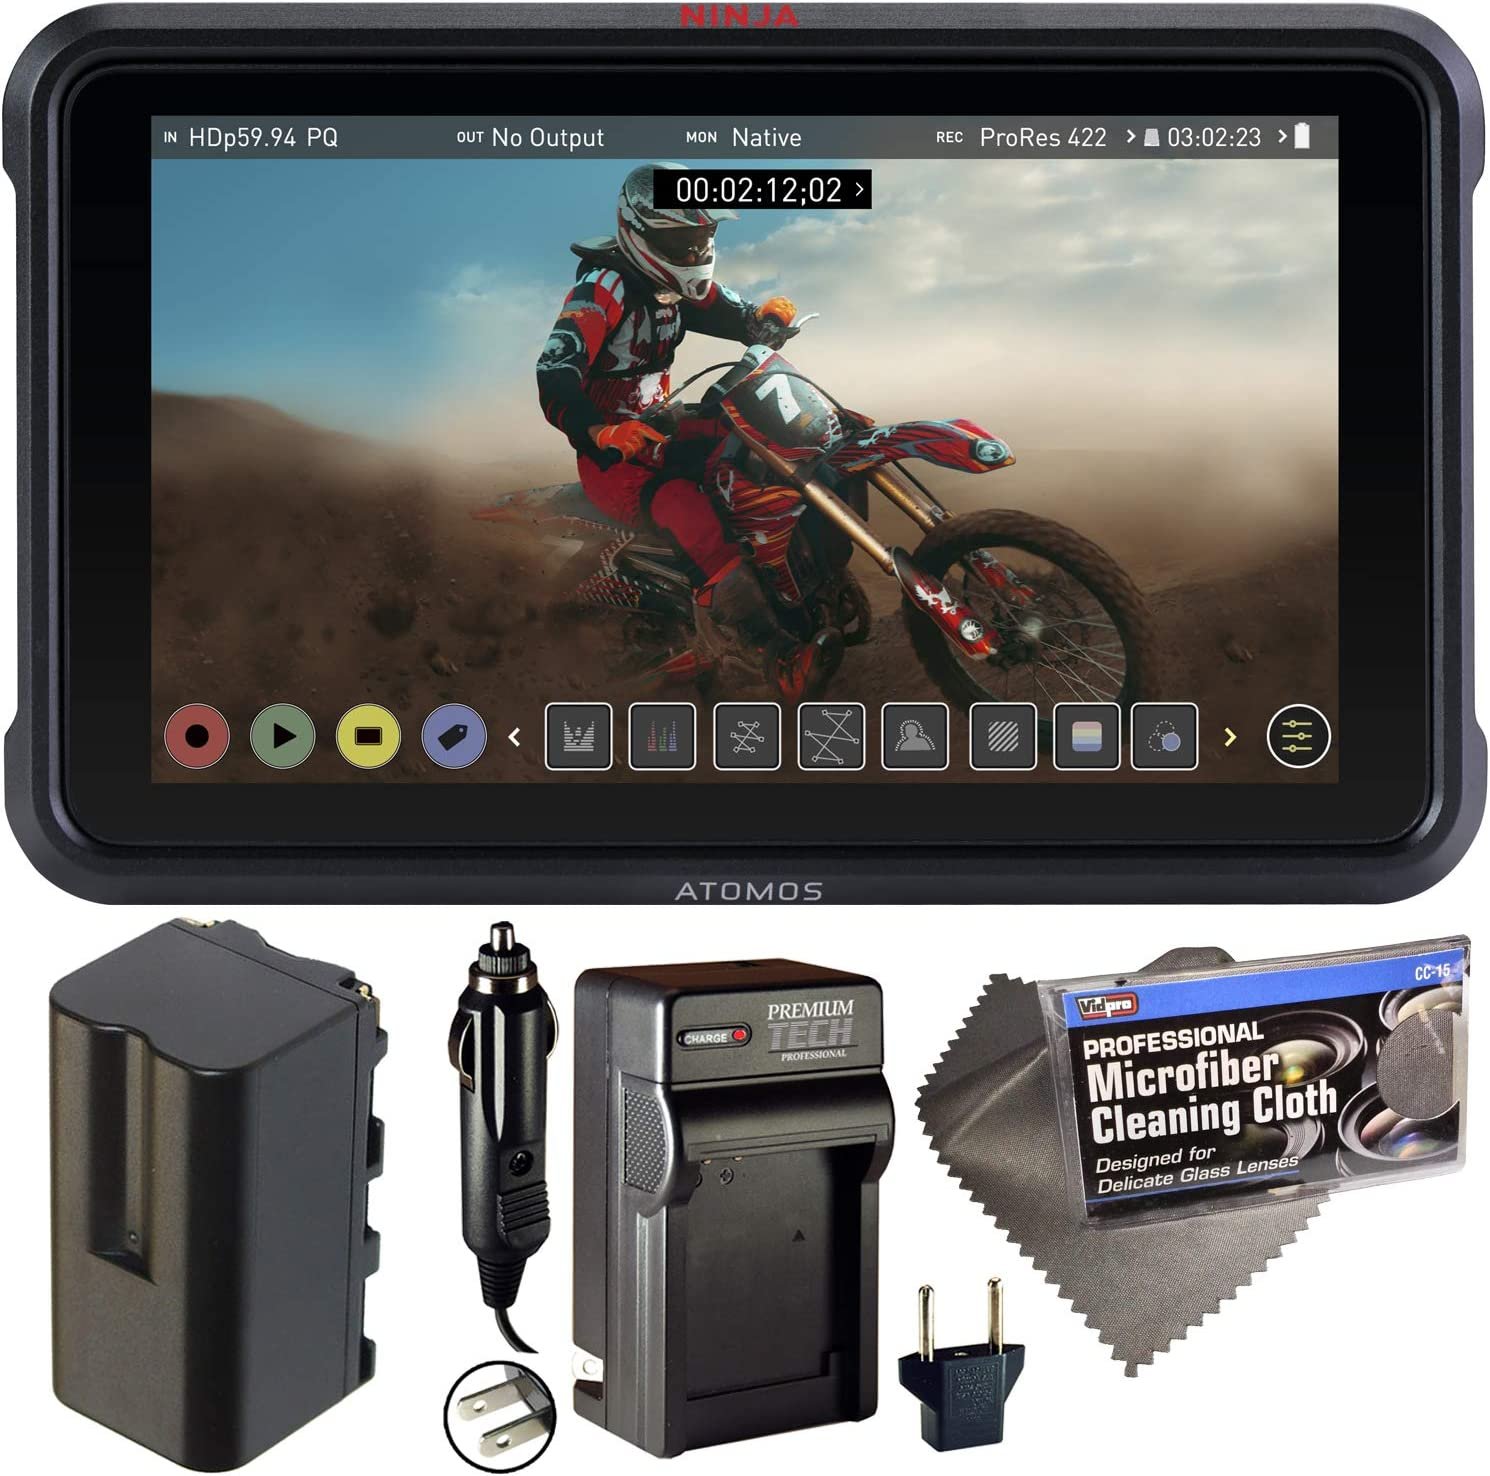 """Atomos Ninja V 5"""" Touchscreen Recording Monitor 10bit HDR with NP-F750 Battery, AC/DC Charger, and Cleaning Cloth - Bundle"""